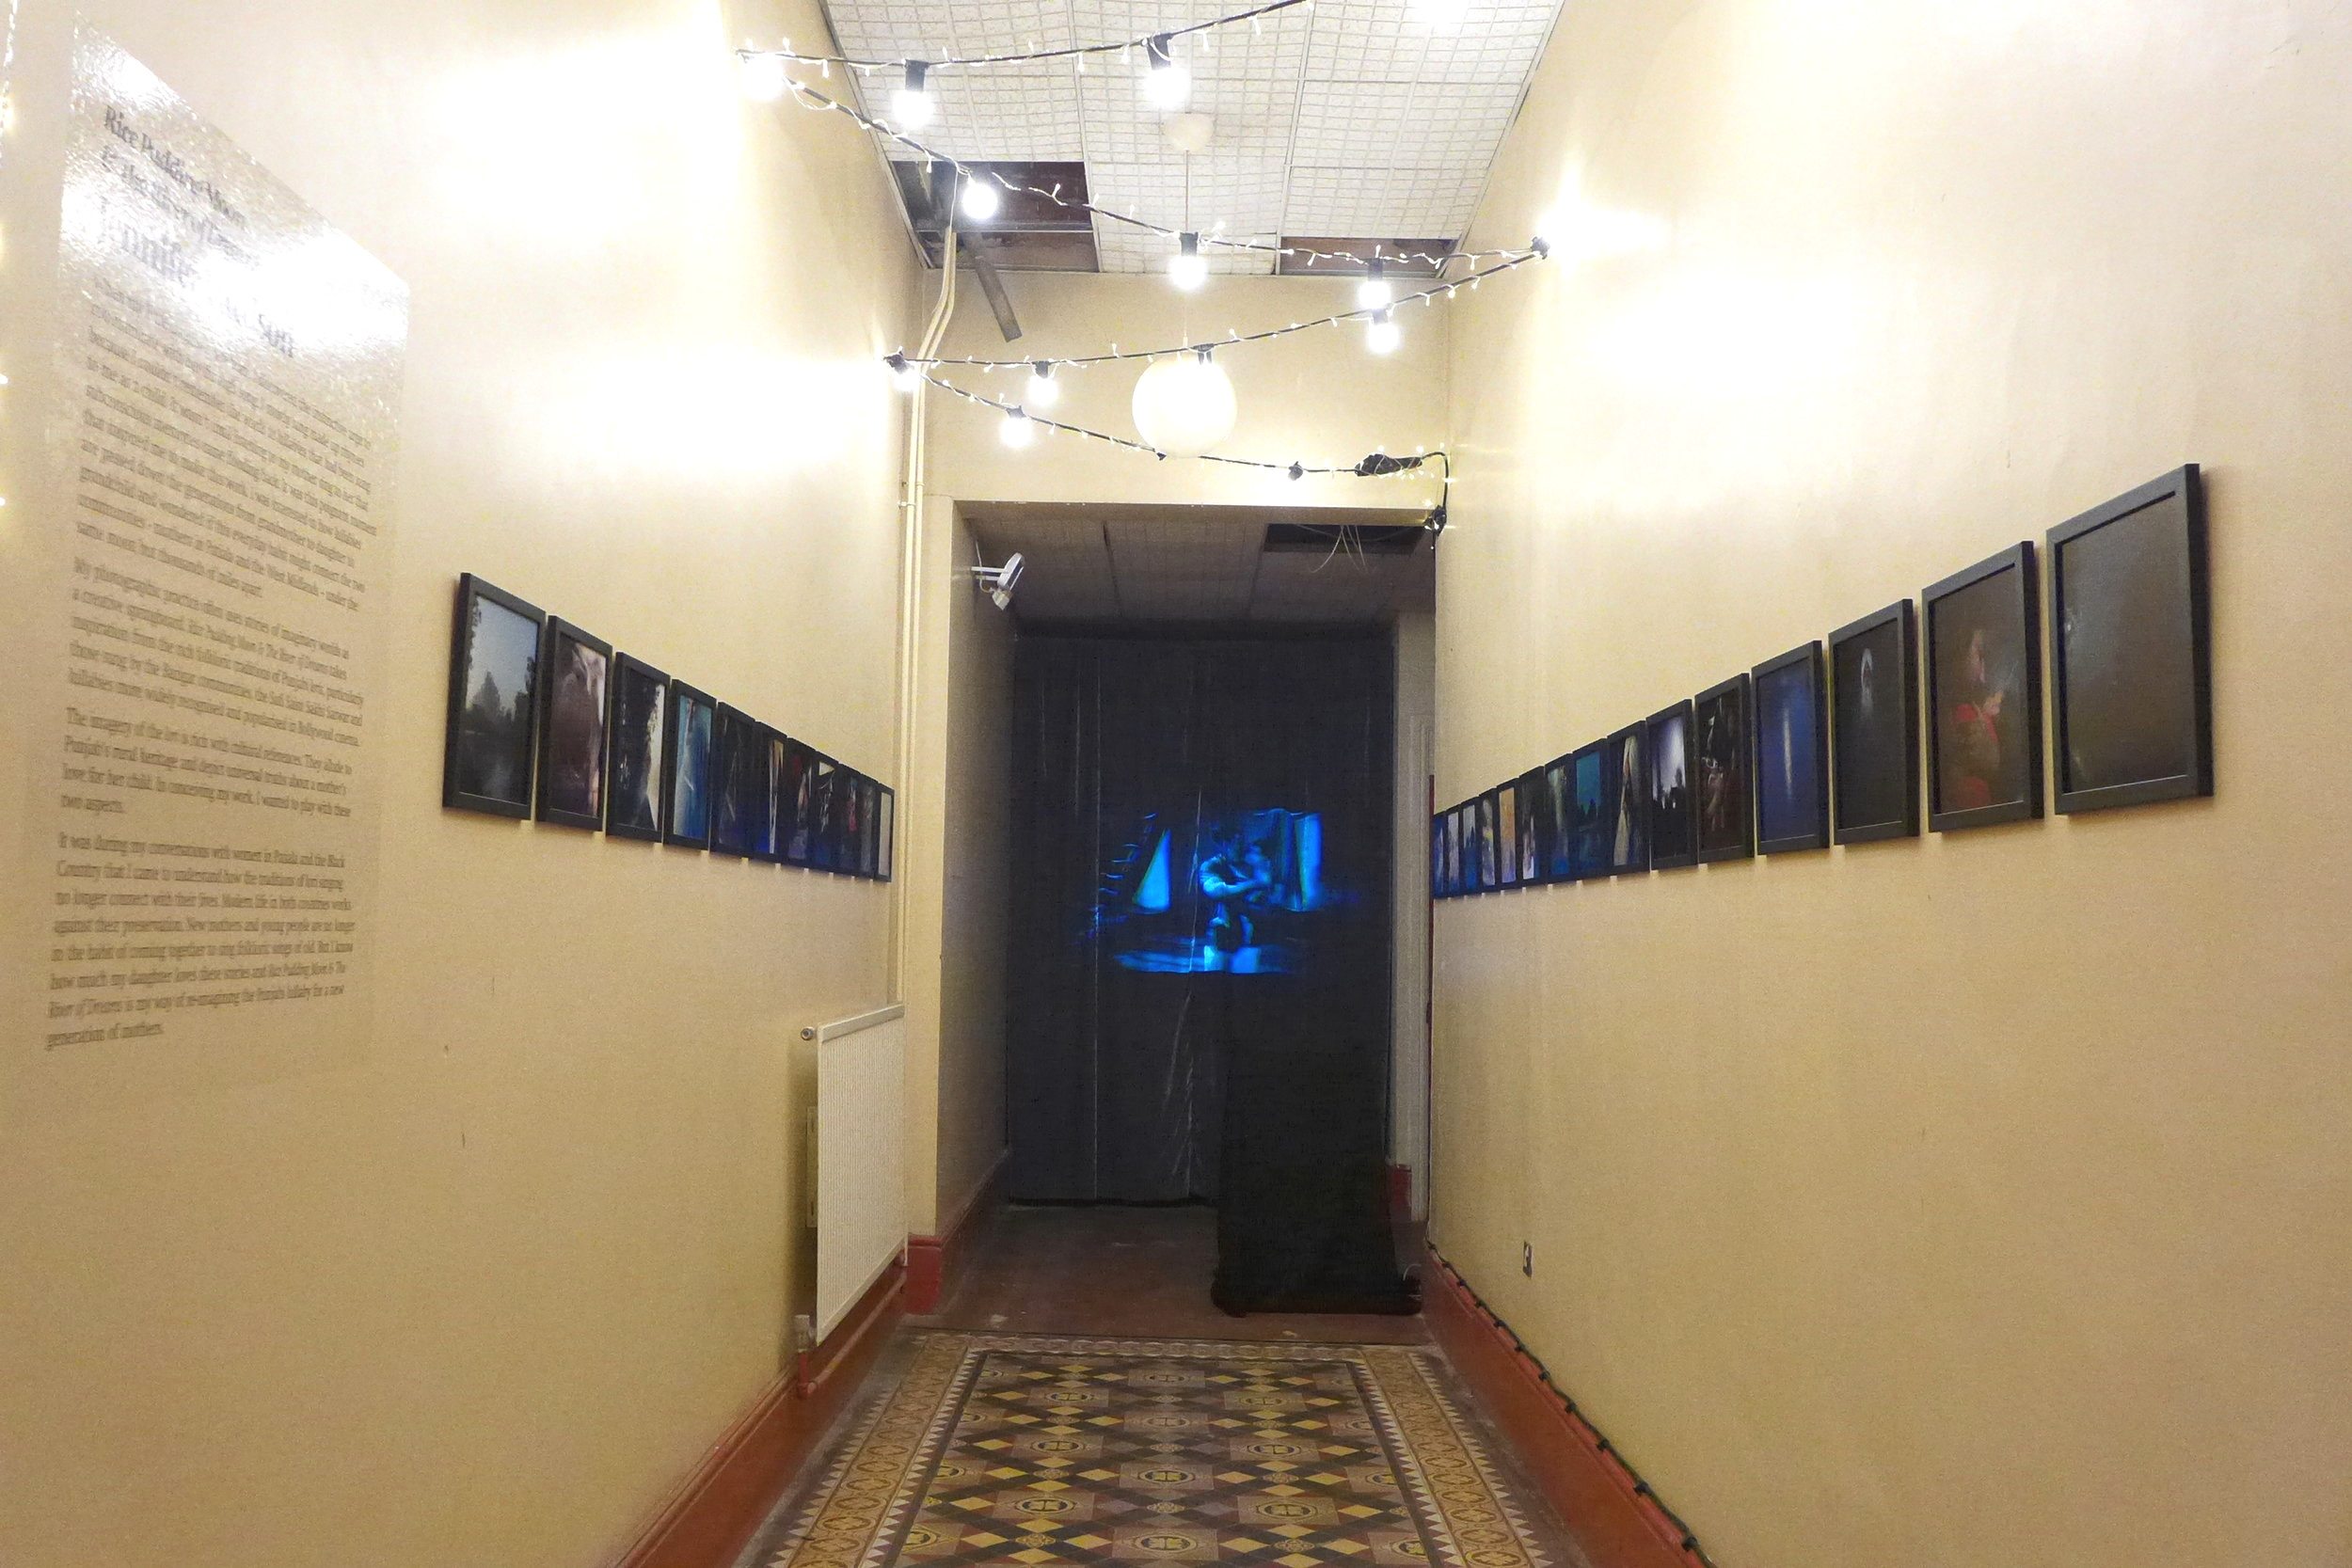 Jennifer Pattison's work includes a projection of Punjabi lori's (lullabies) from Indian films